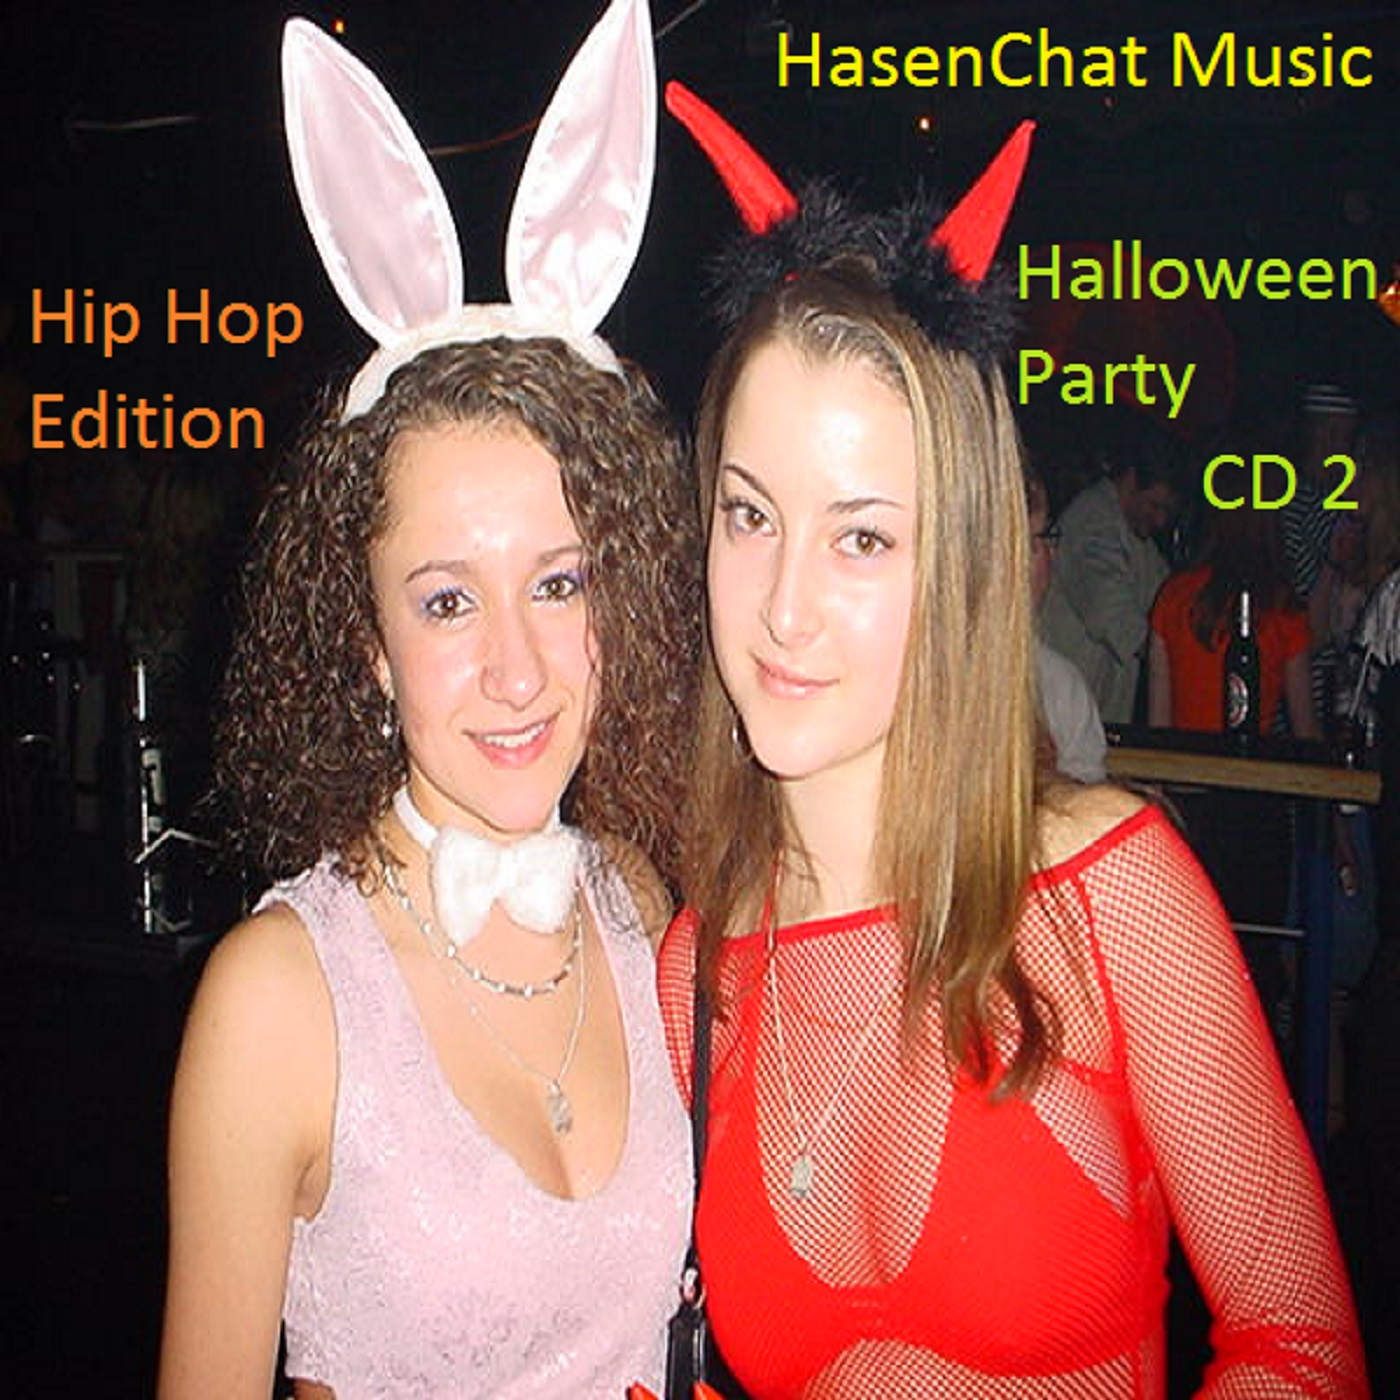 1400x1400 Cover CD 2 Halloween Party - Hip Hop Edition